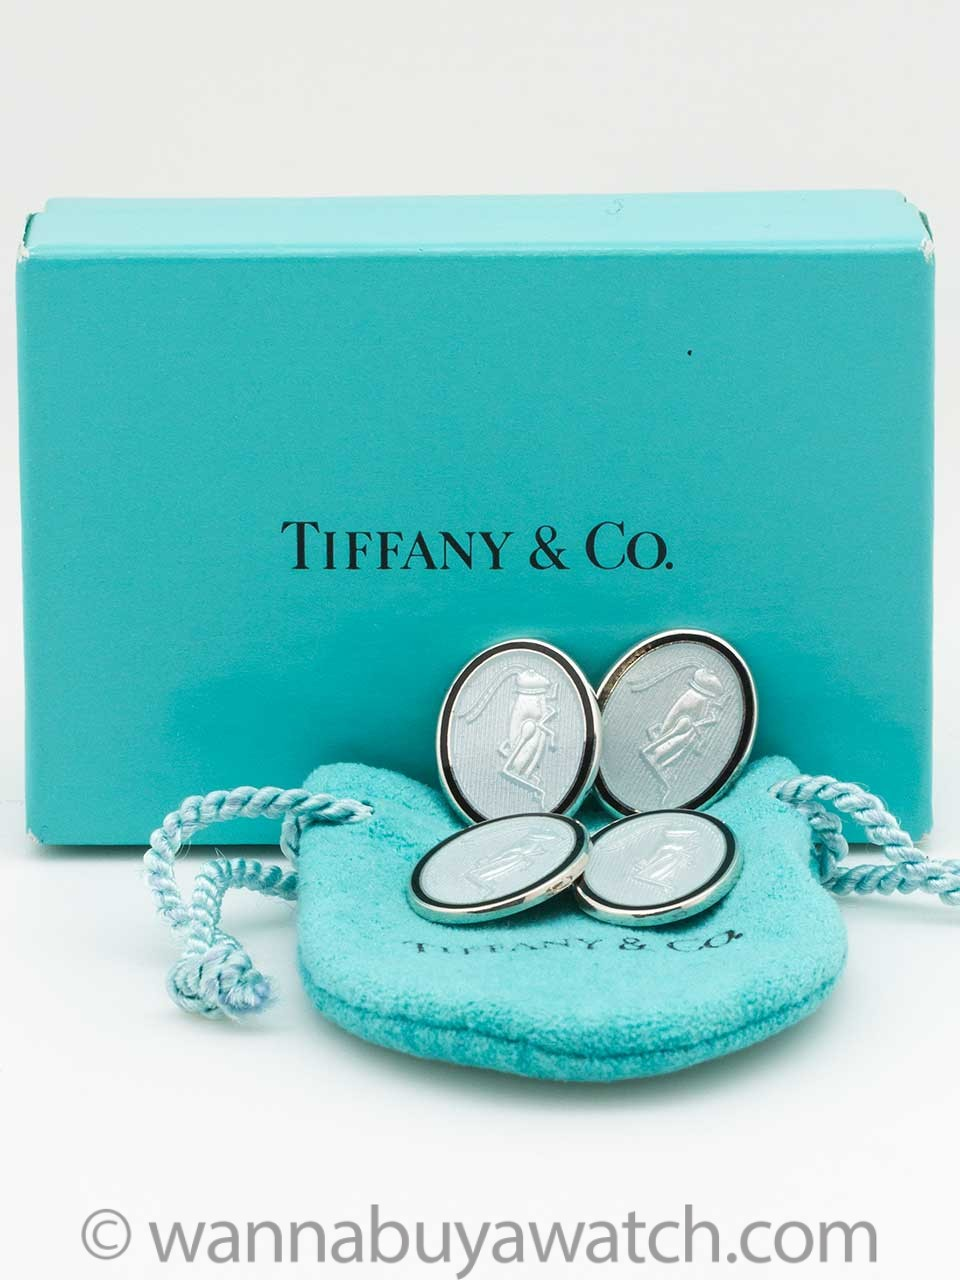 Tiffany & Co Sterling & Enamel Cufflinks Cricket Motif